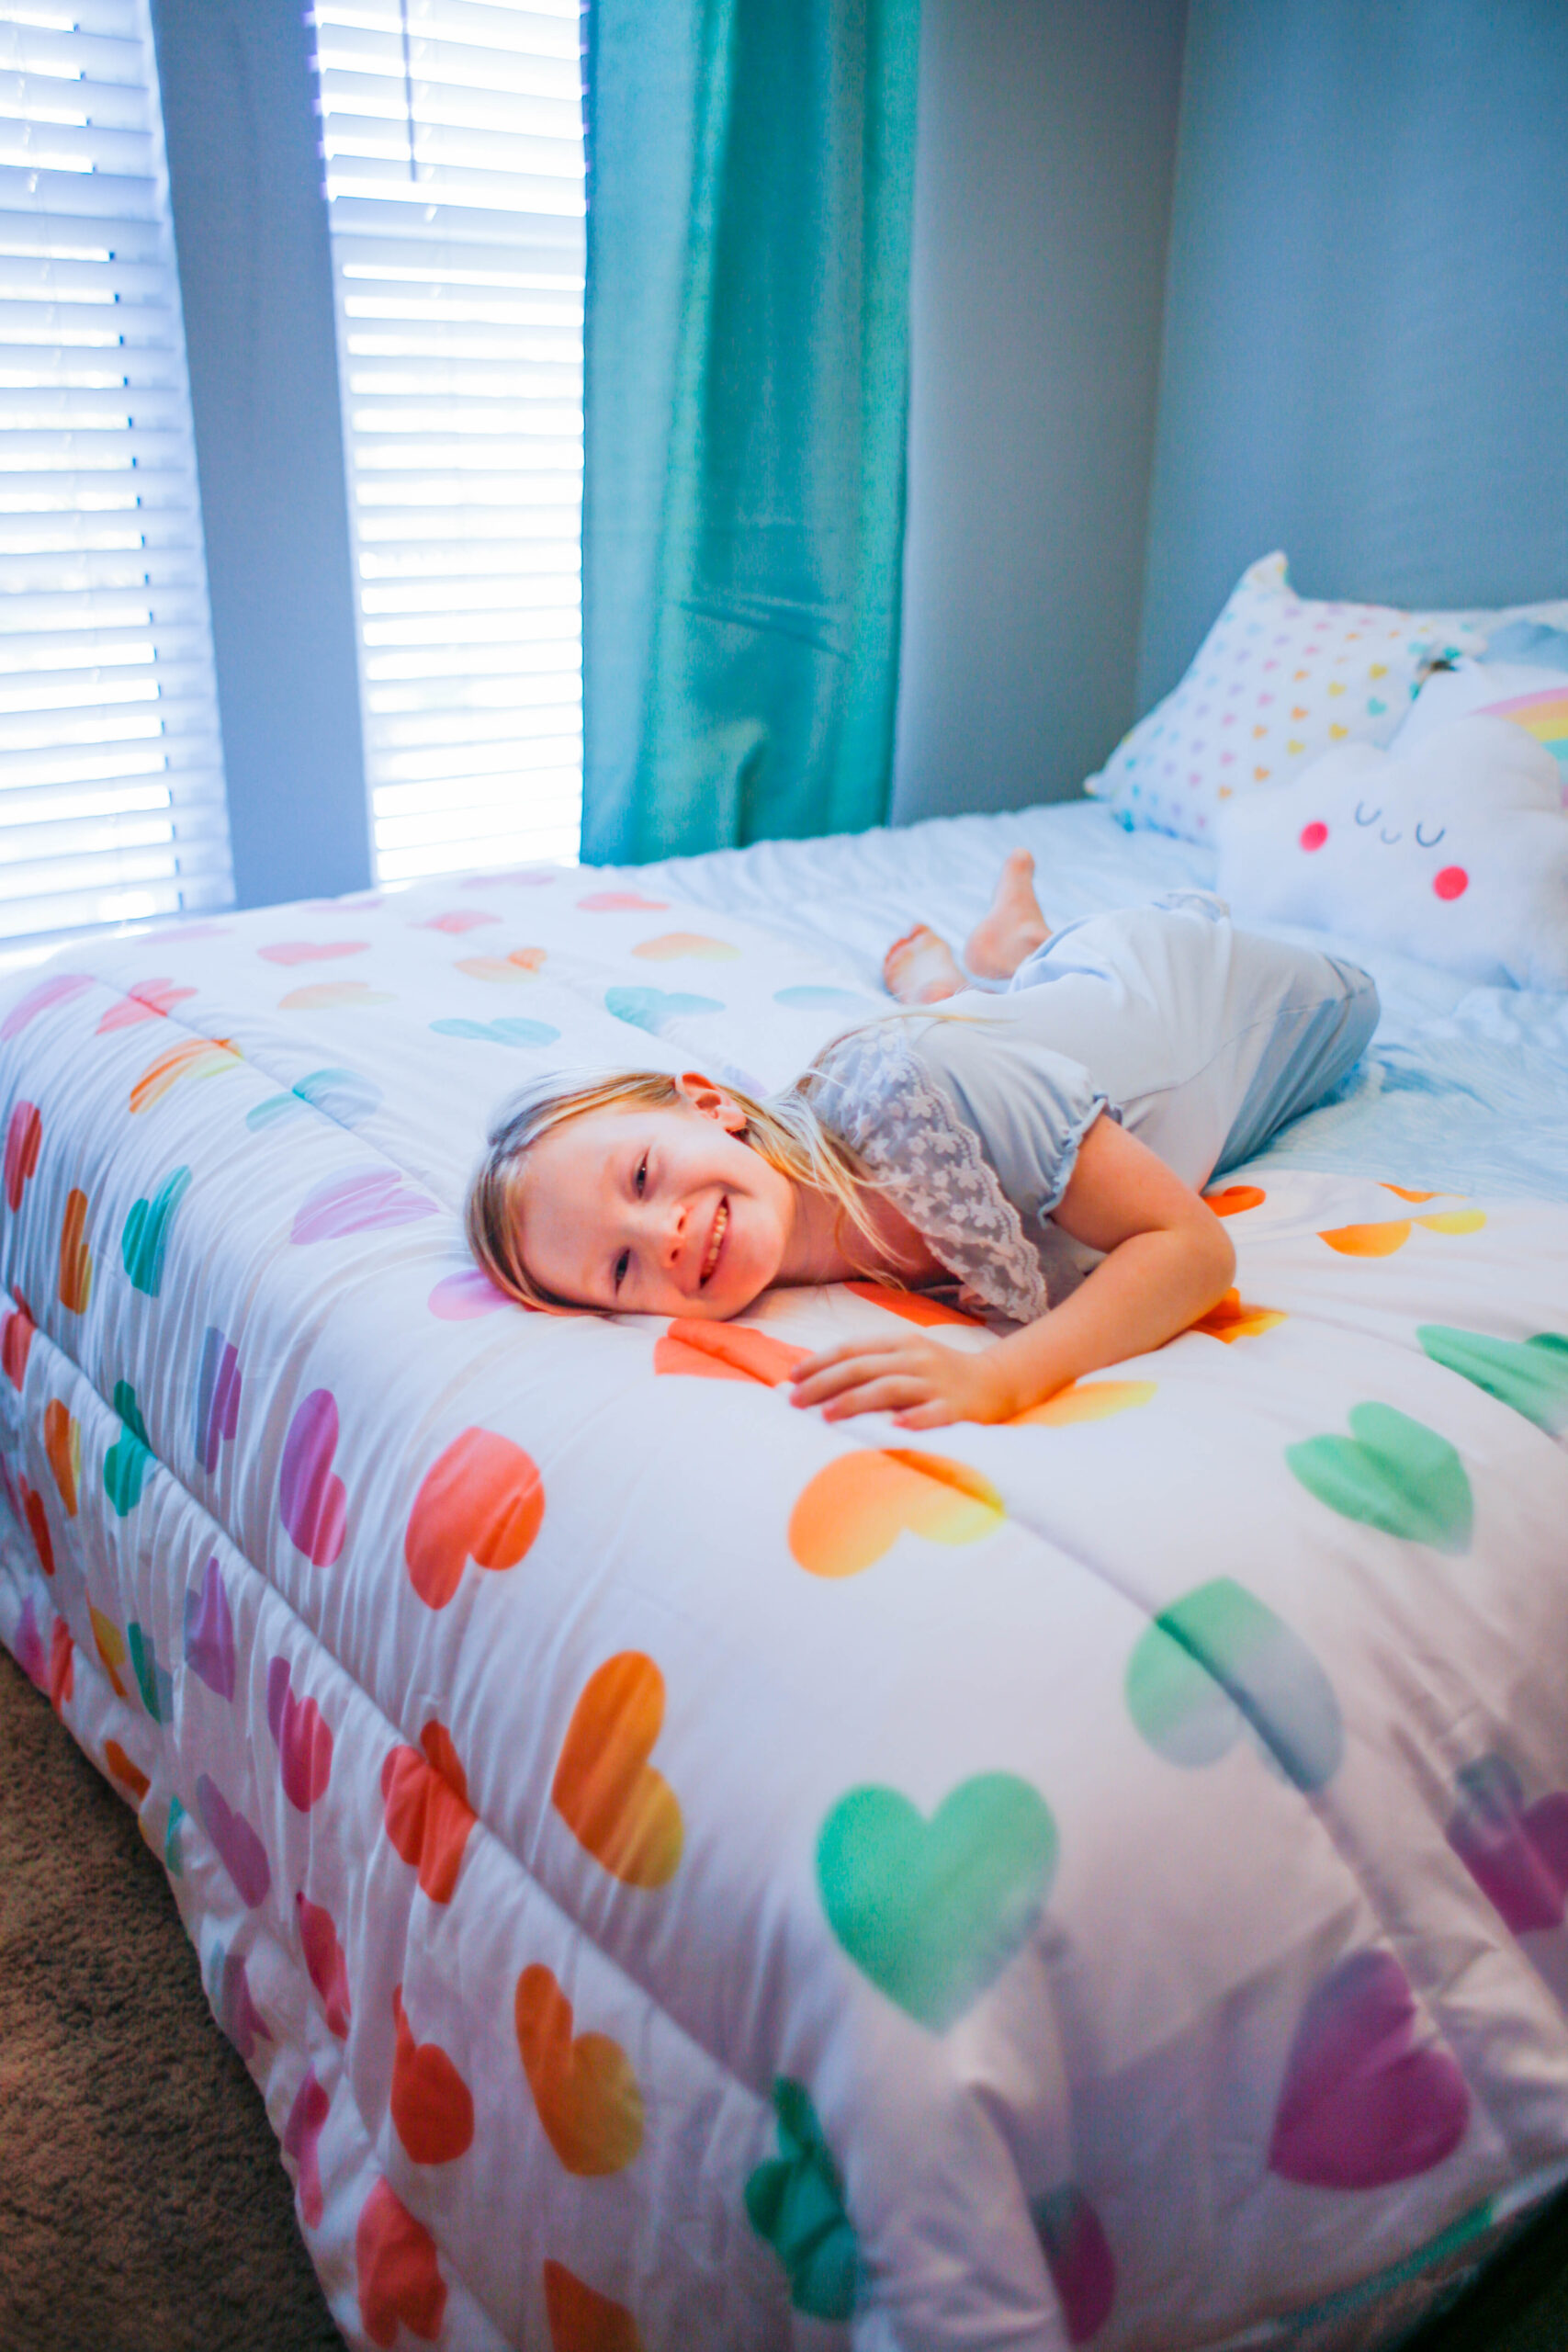 Wondering if Beddy's are worth the price? This review tells all!